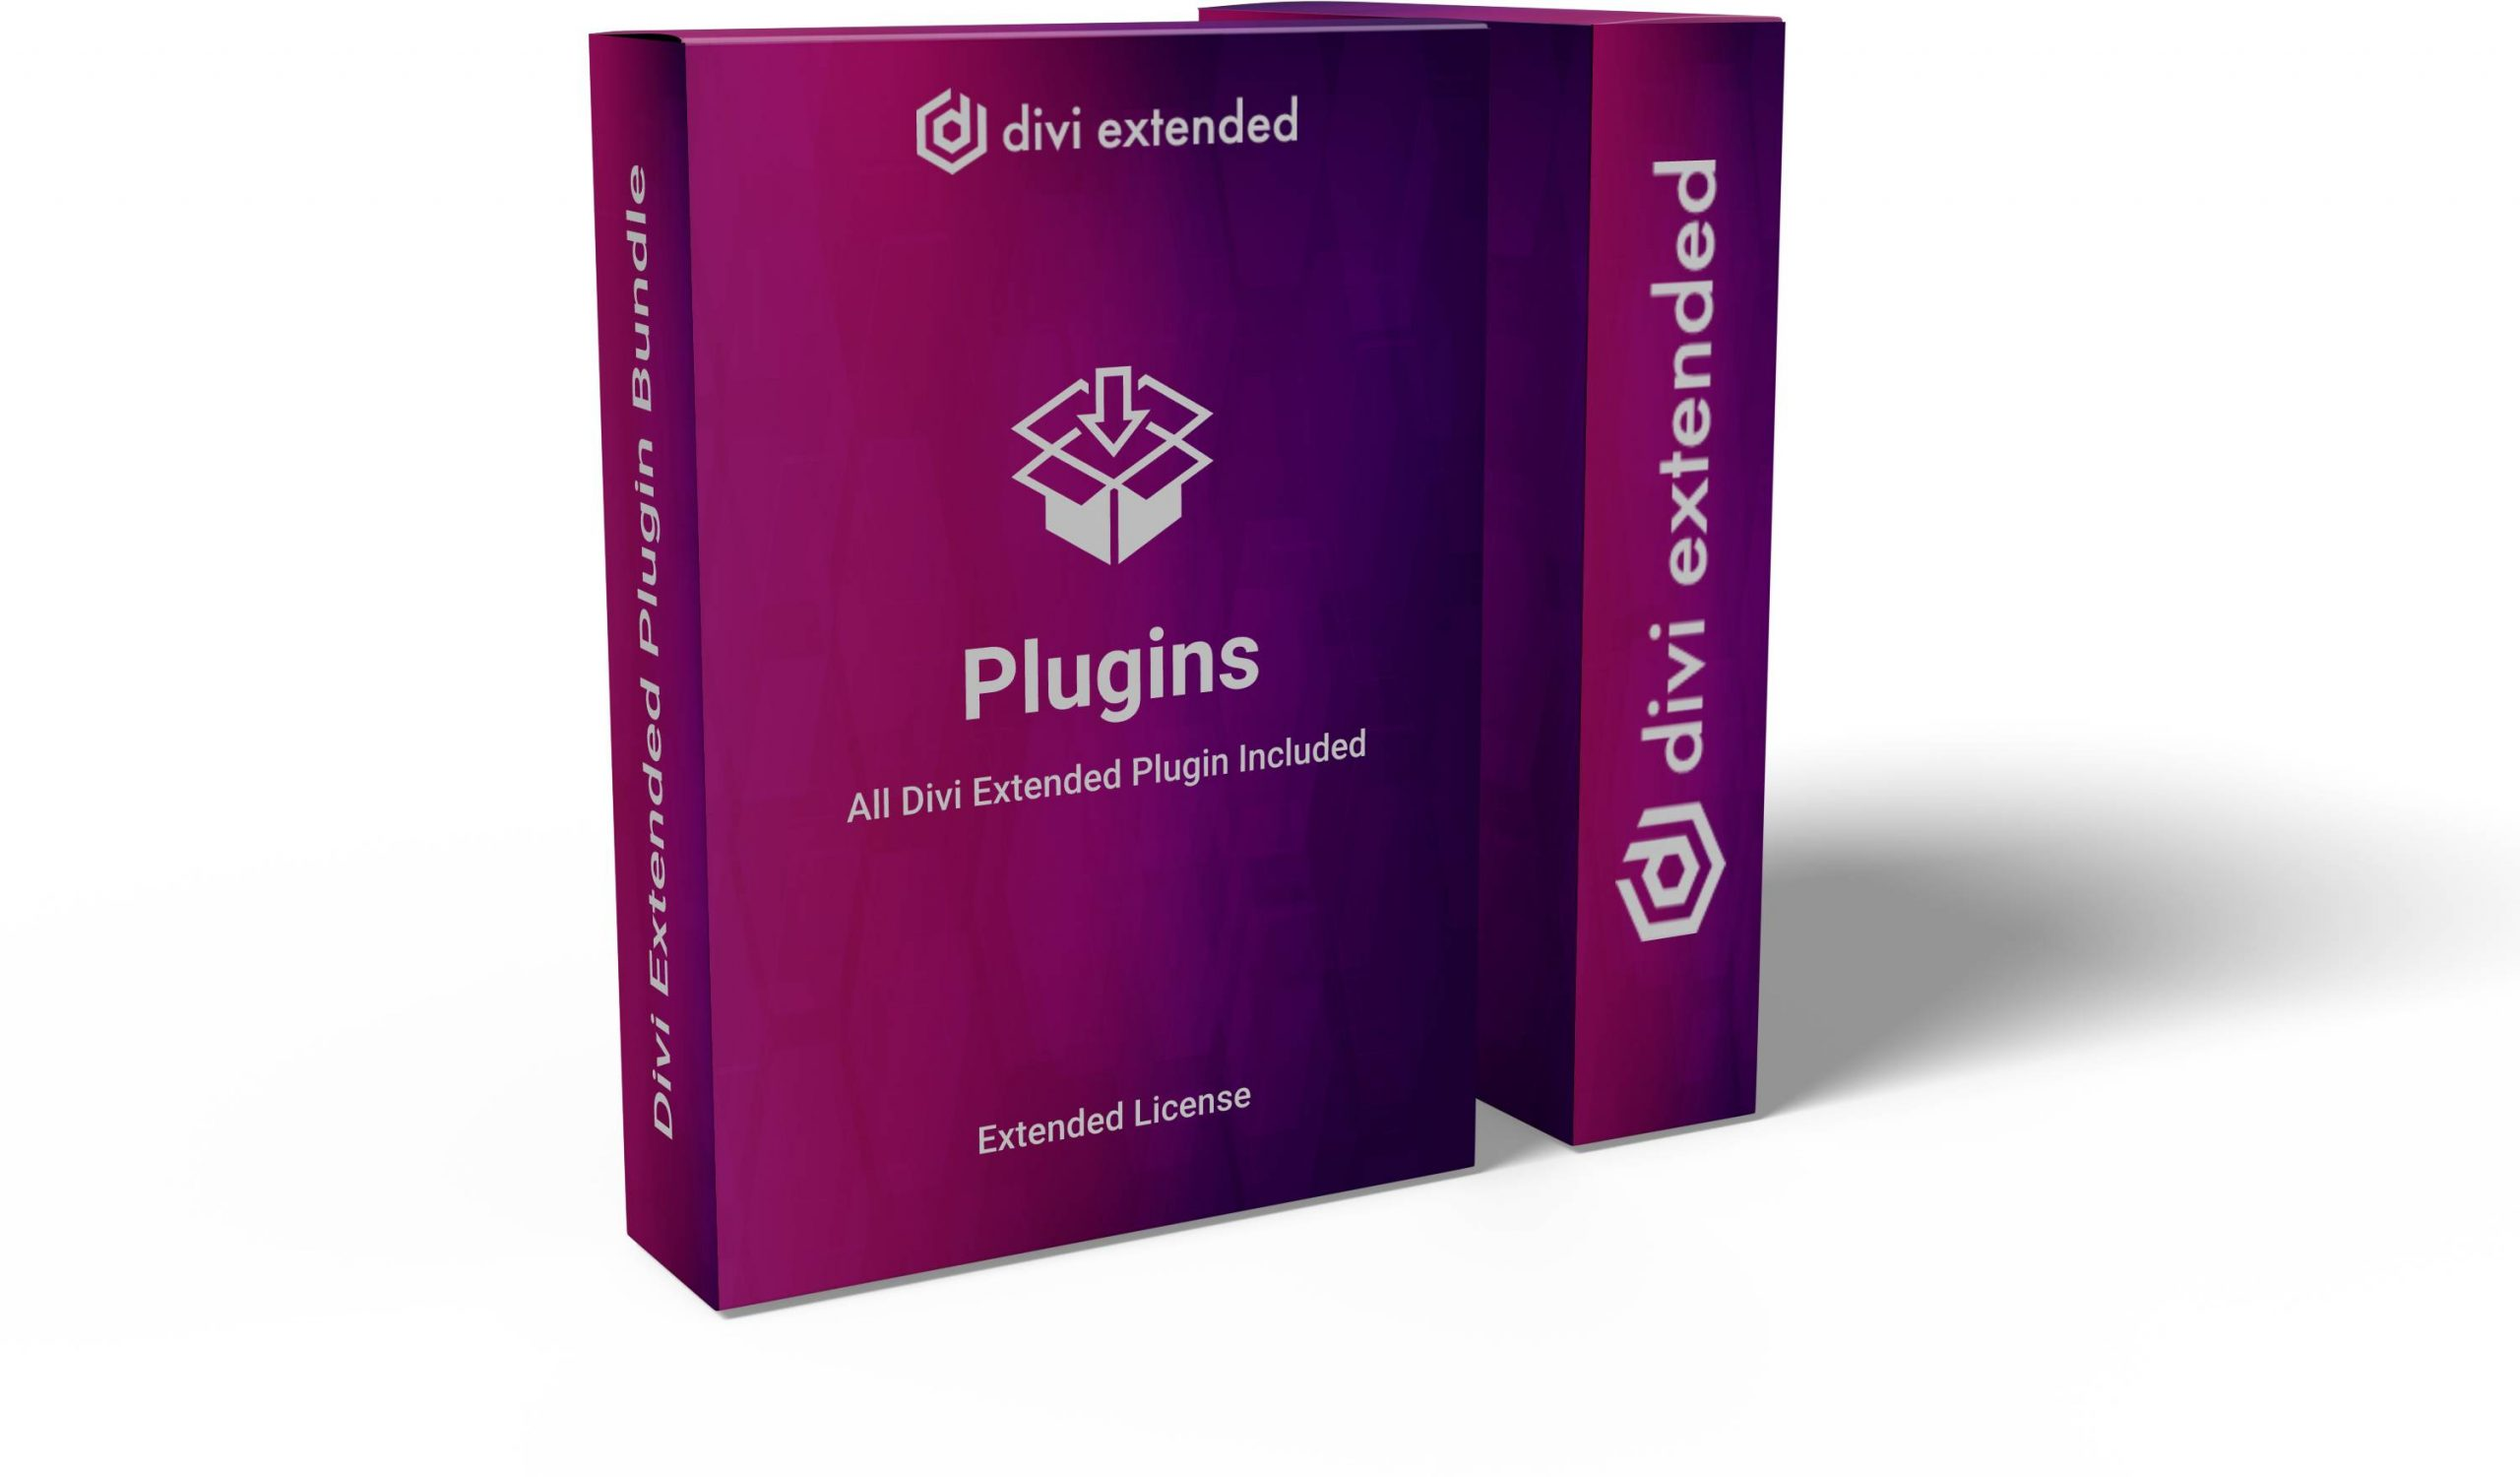 Join Divi Extended membership to get access to all plugins